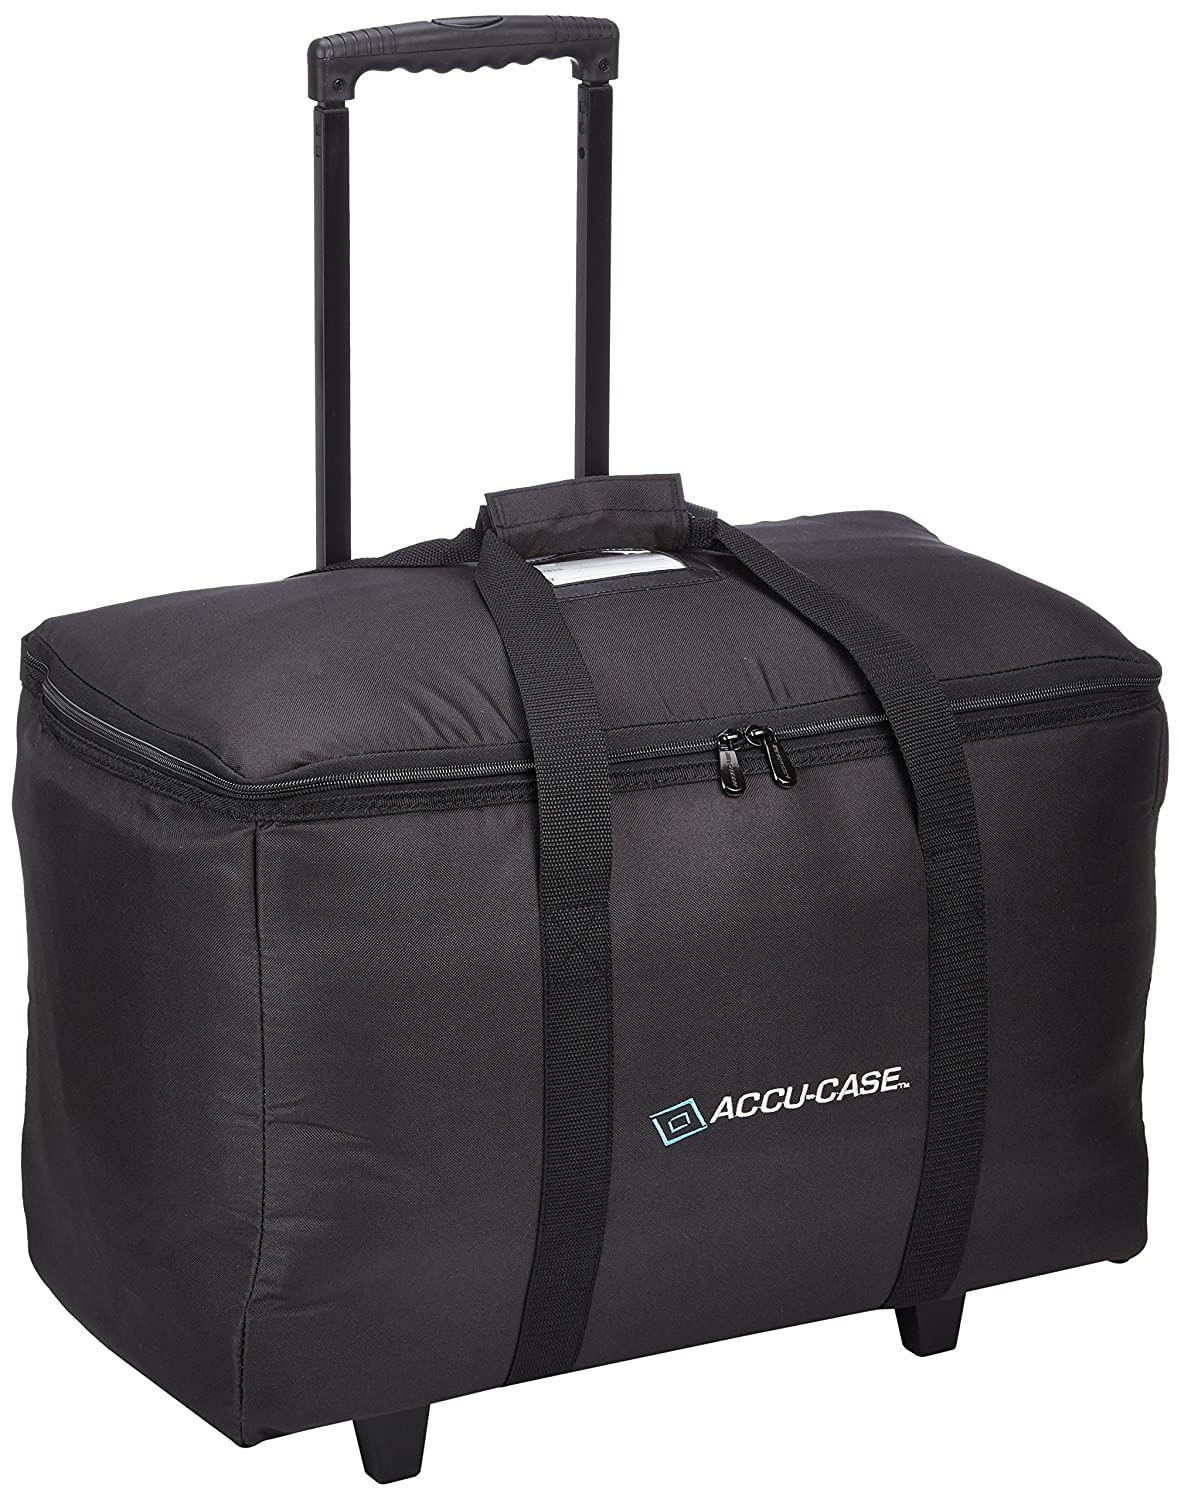 Arriba Padded Multi Purpose Case Acr-16 Bottom Stackable Rolling Case Dims 16X10X14 Inches